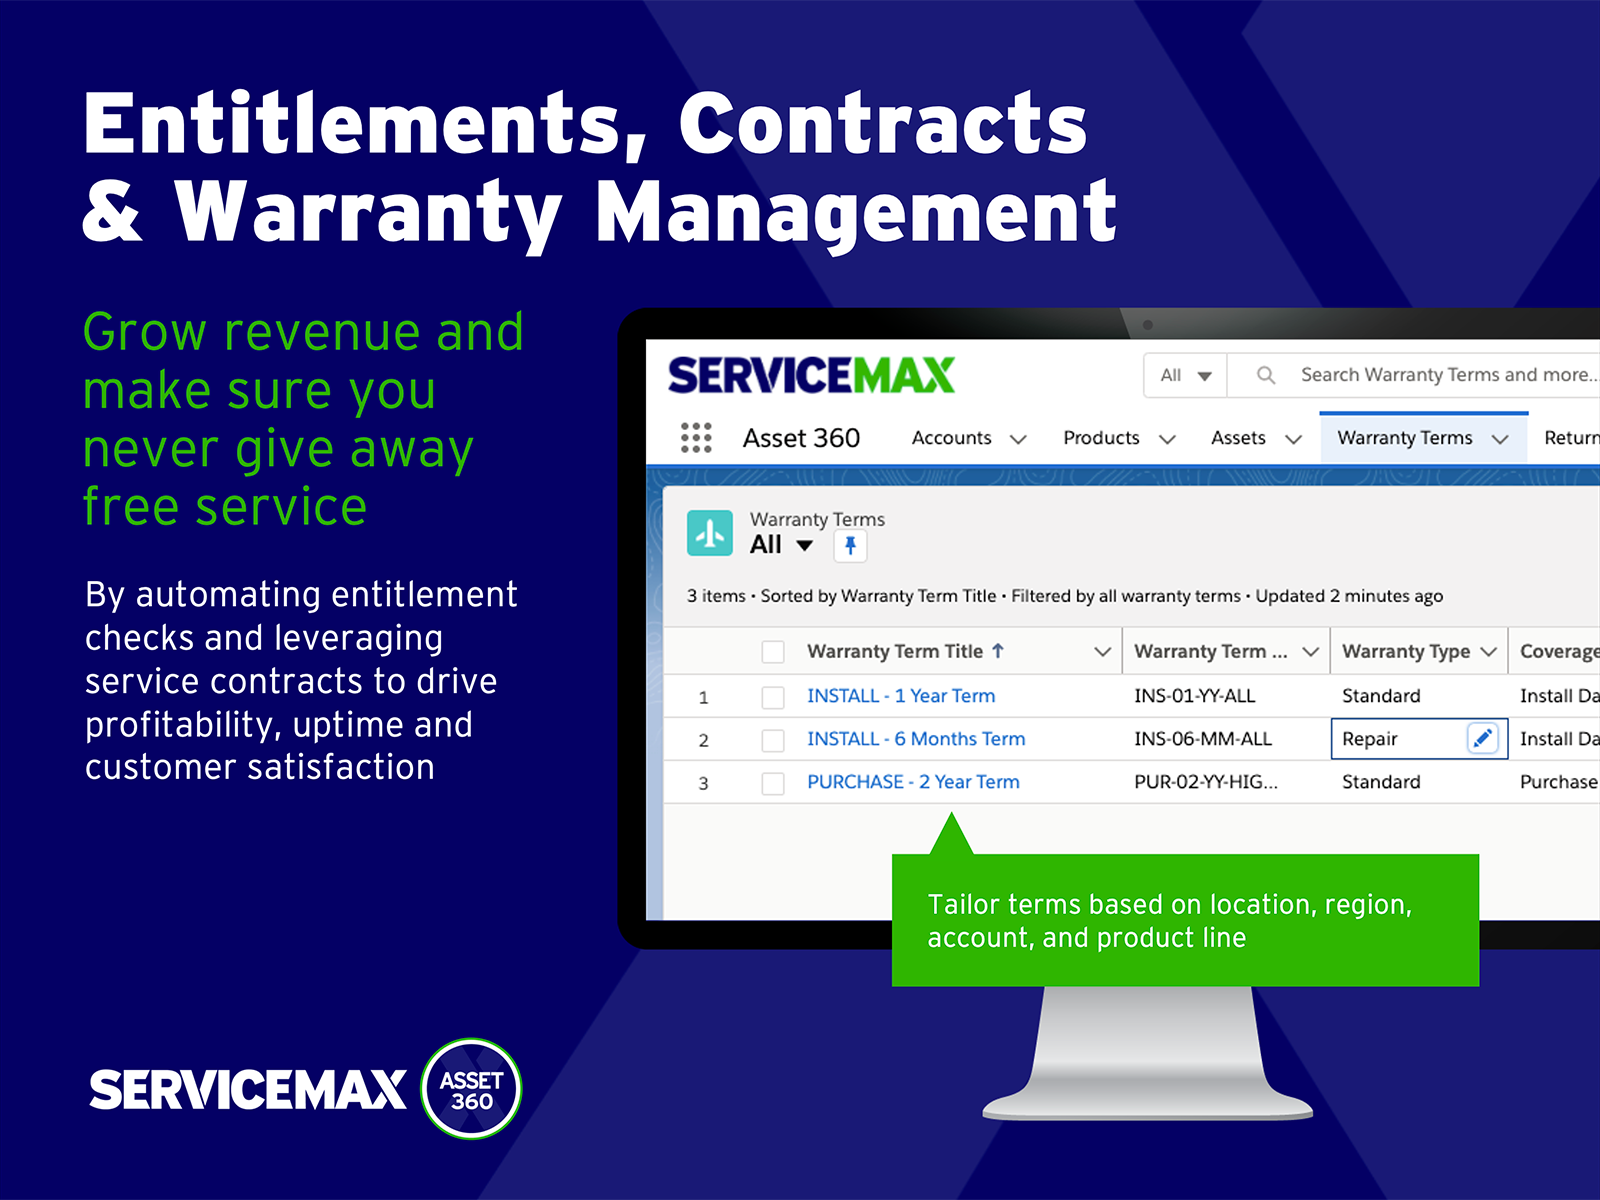 ServiceMax Software - By automating service entitlements with Asset 360, you can prevent service revenue losses caused by work that should have been charged for. Your service teams can instantly see the service coverage for every asset and respond quickly to customer requests.